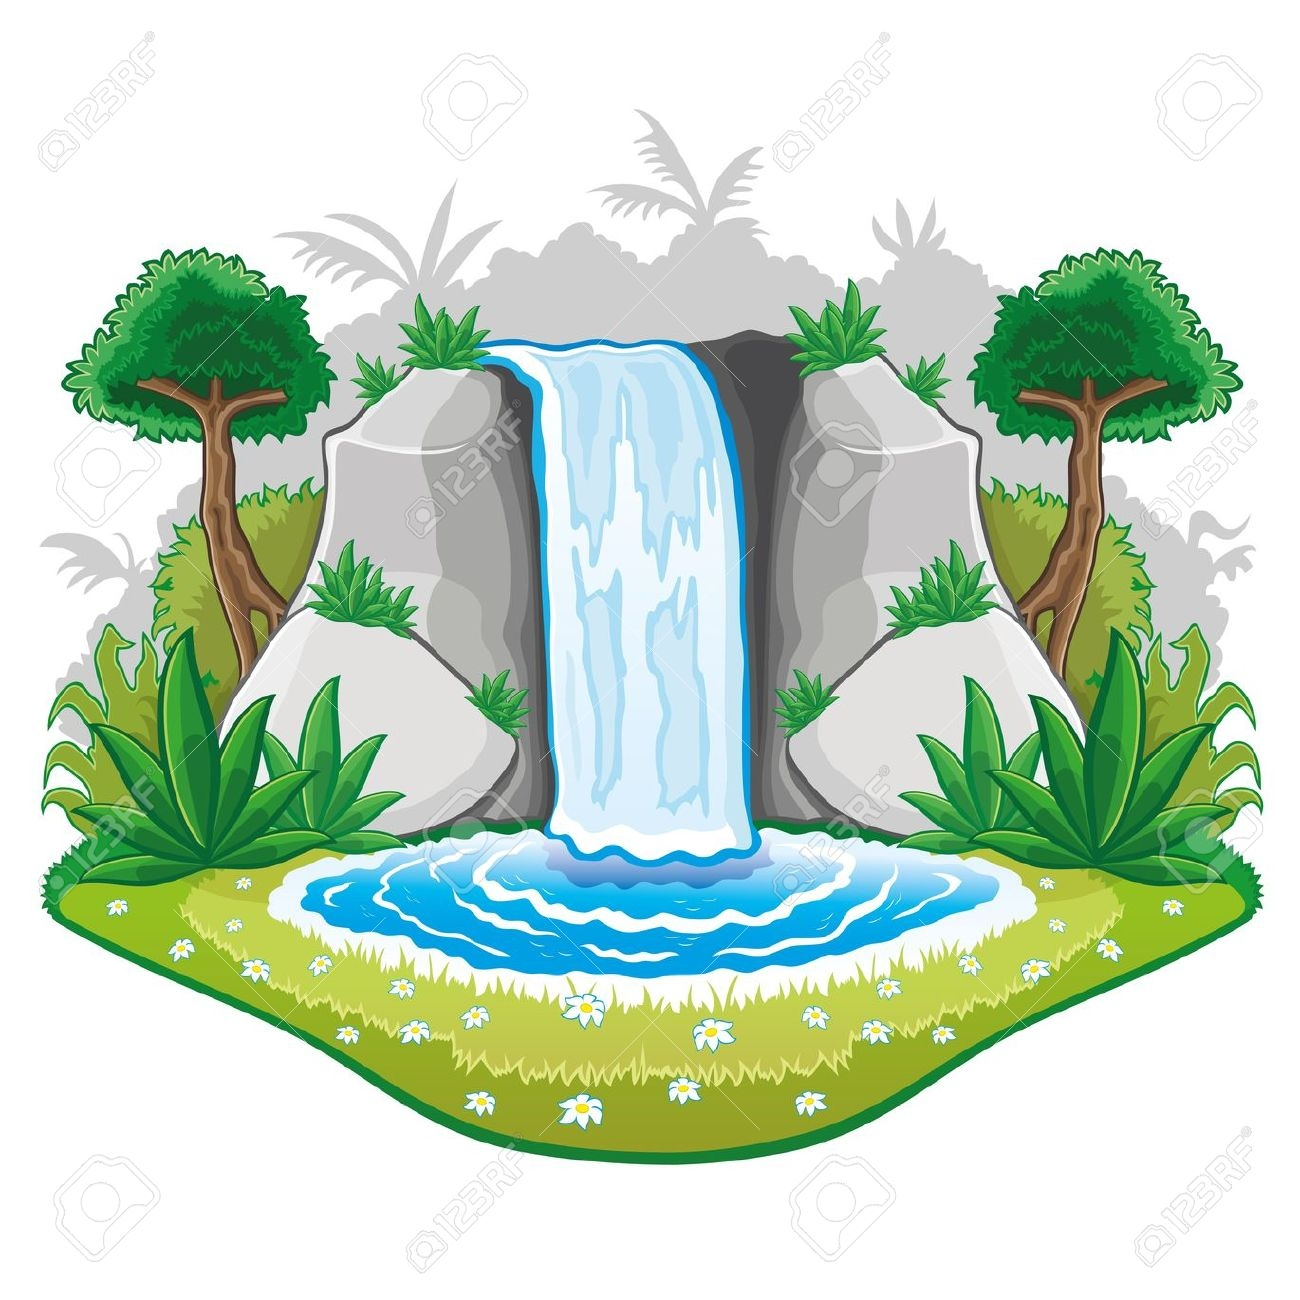 Waterfall clipart picture royalty free stock 75+ Waterfall Clipart | ClipartLook picture royalty free stock